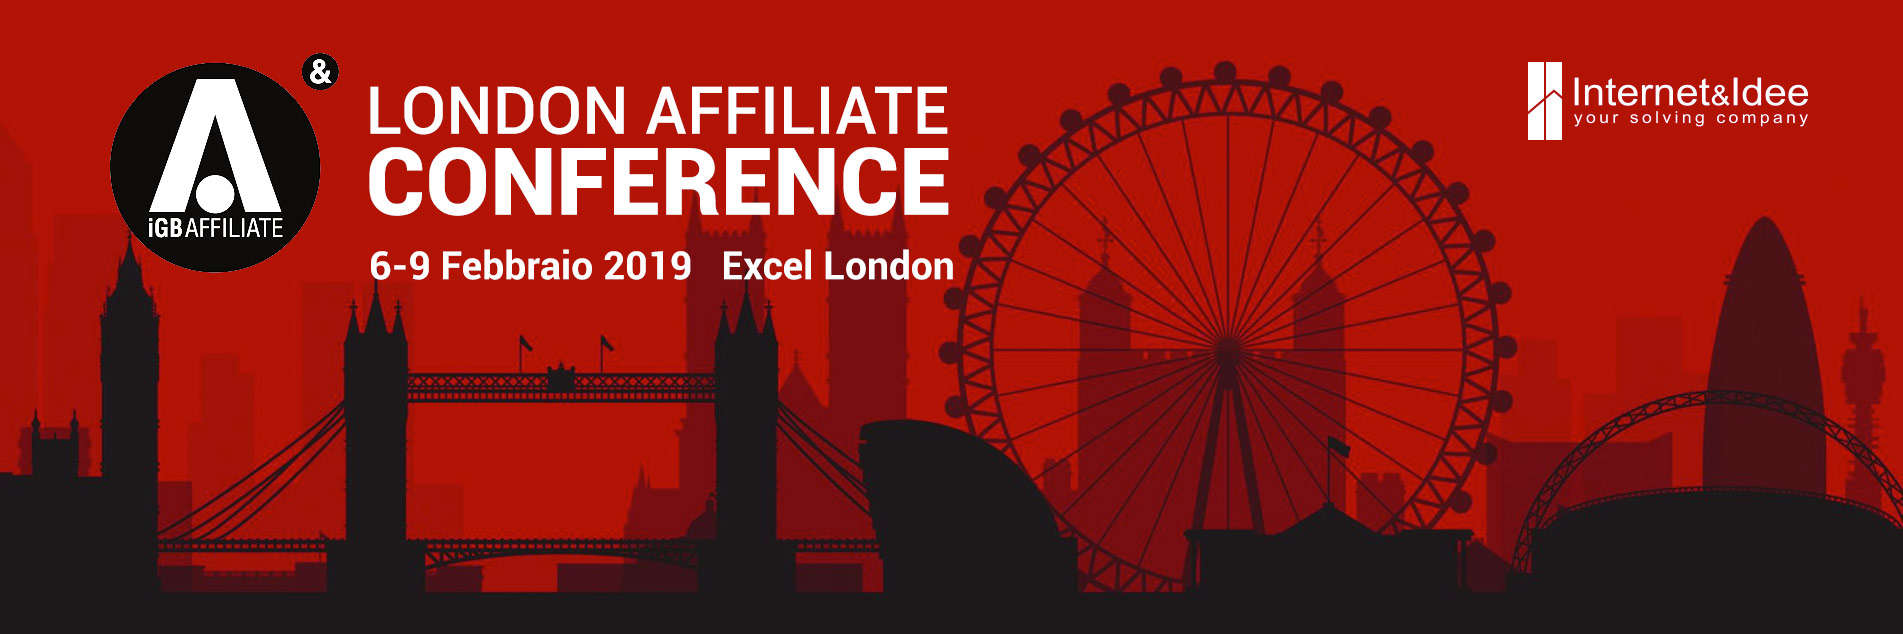 Internet & Idee to attend London Affiliate Conference 2019